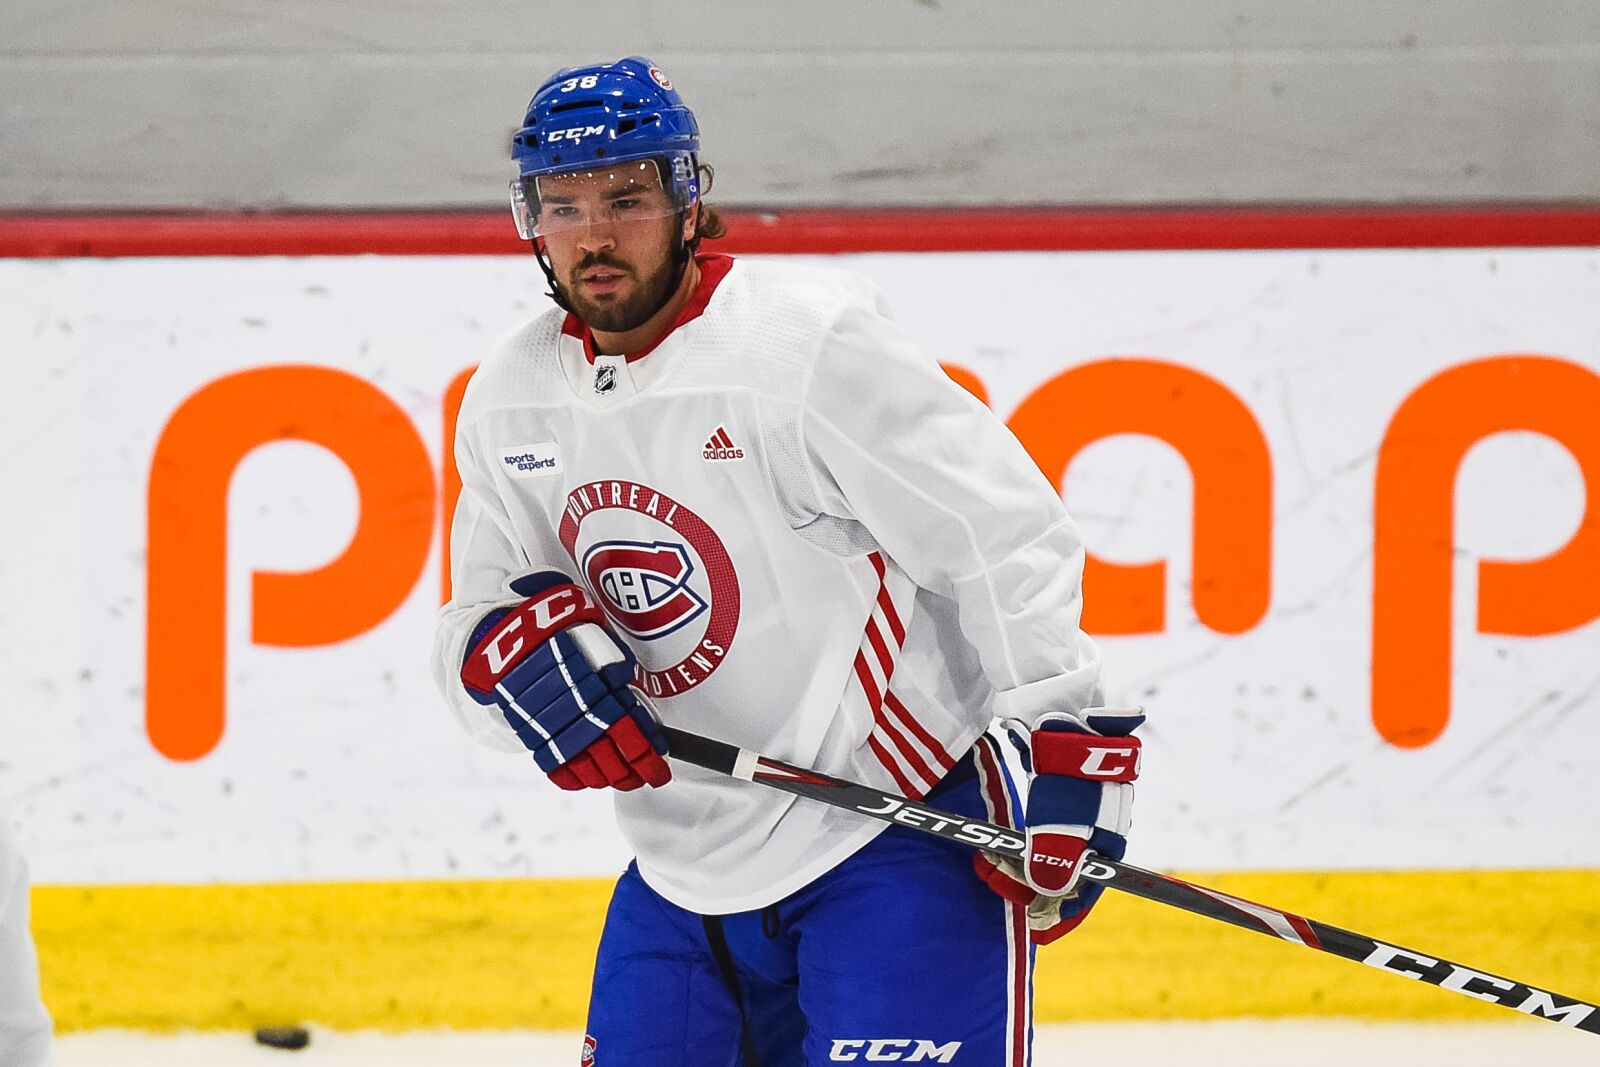 The Joel Teasdale injury is a major loss for the Montreal Canadiens